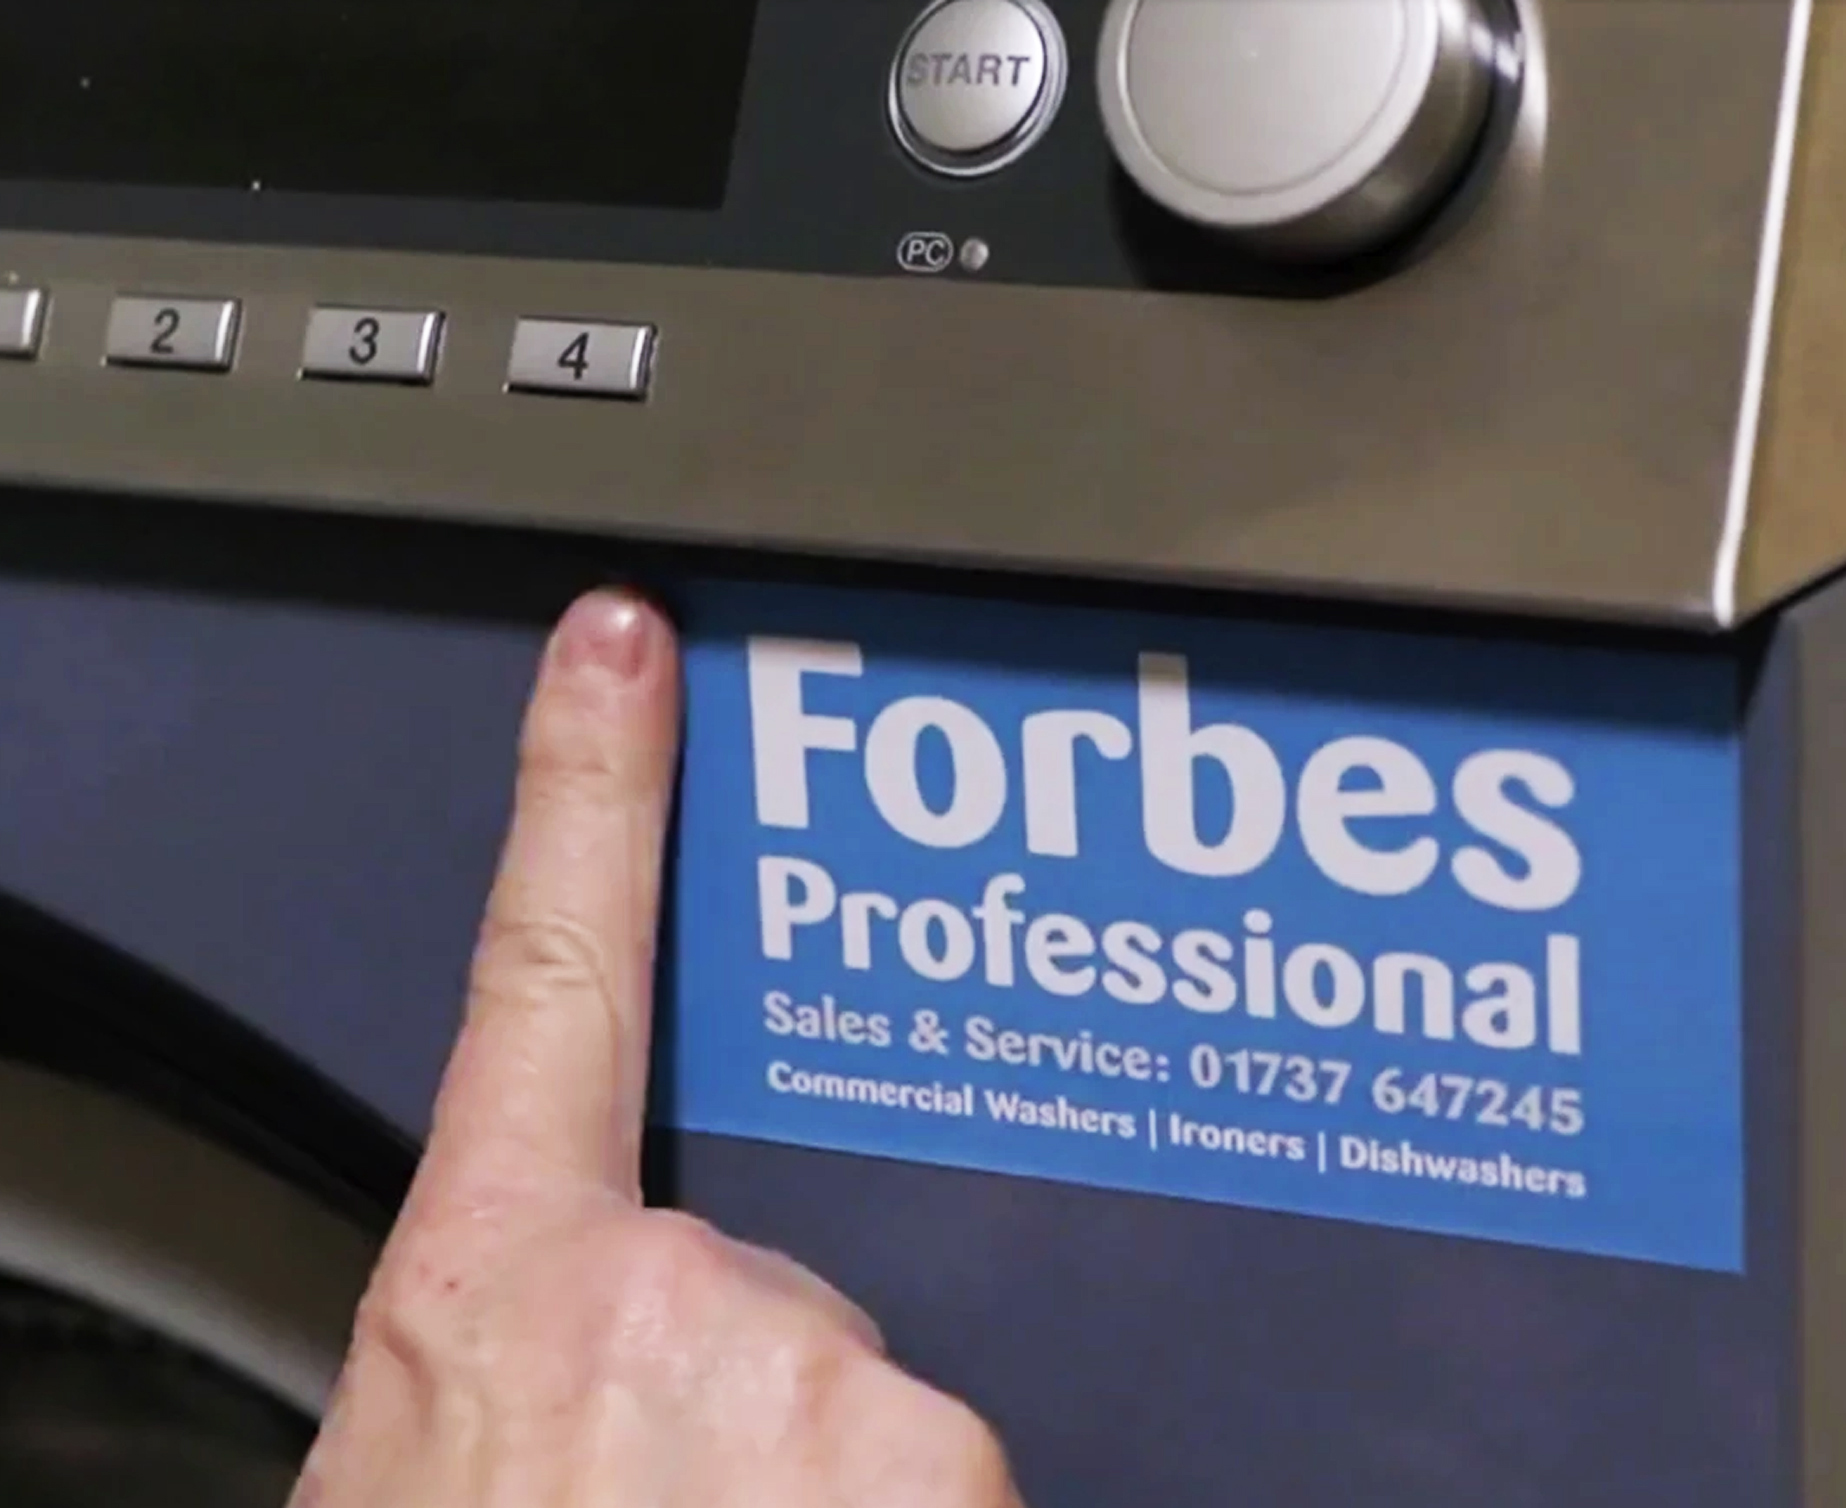 Forbes P